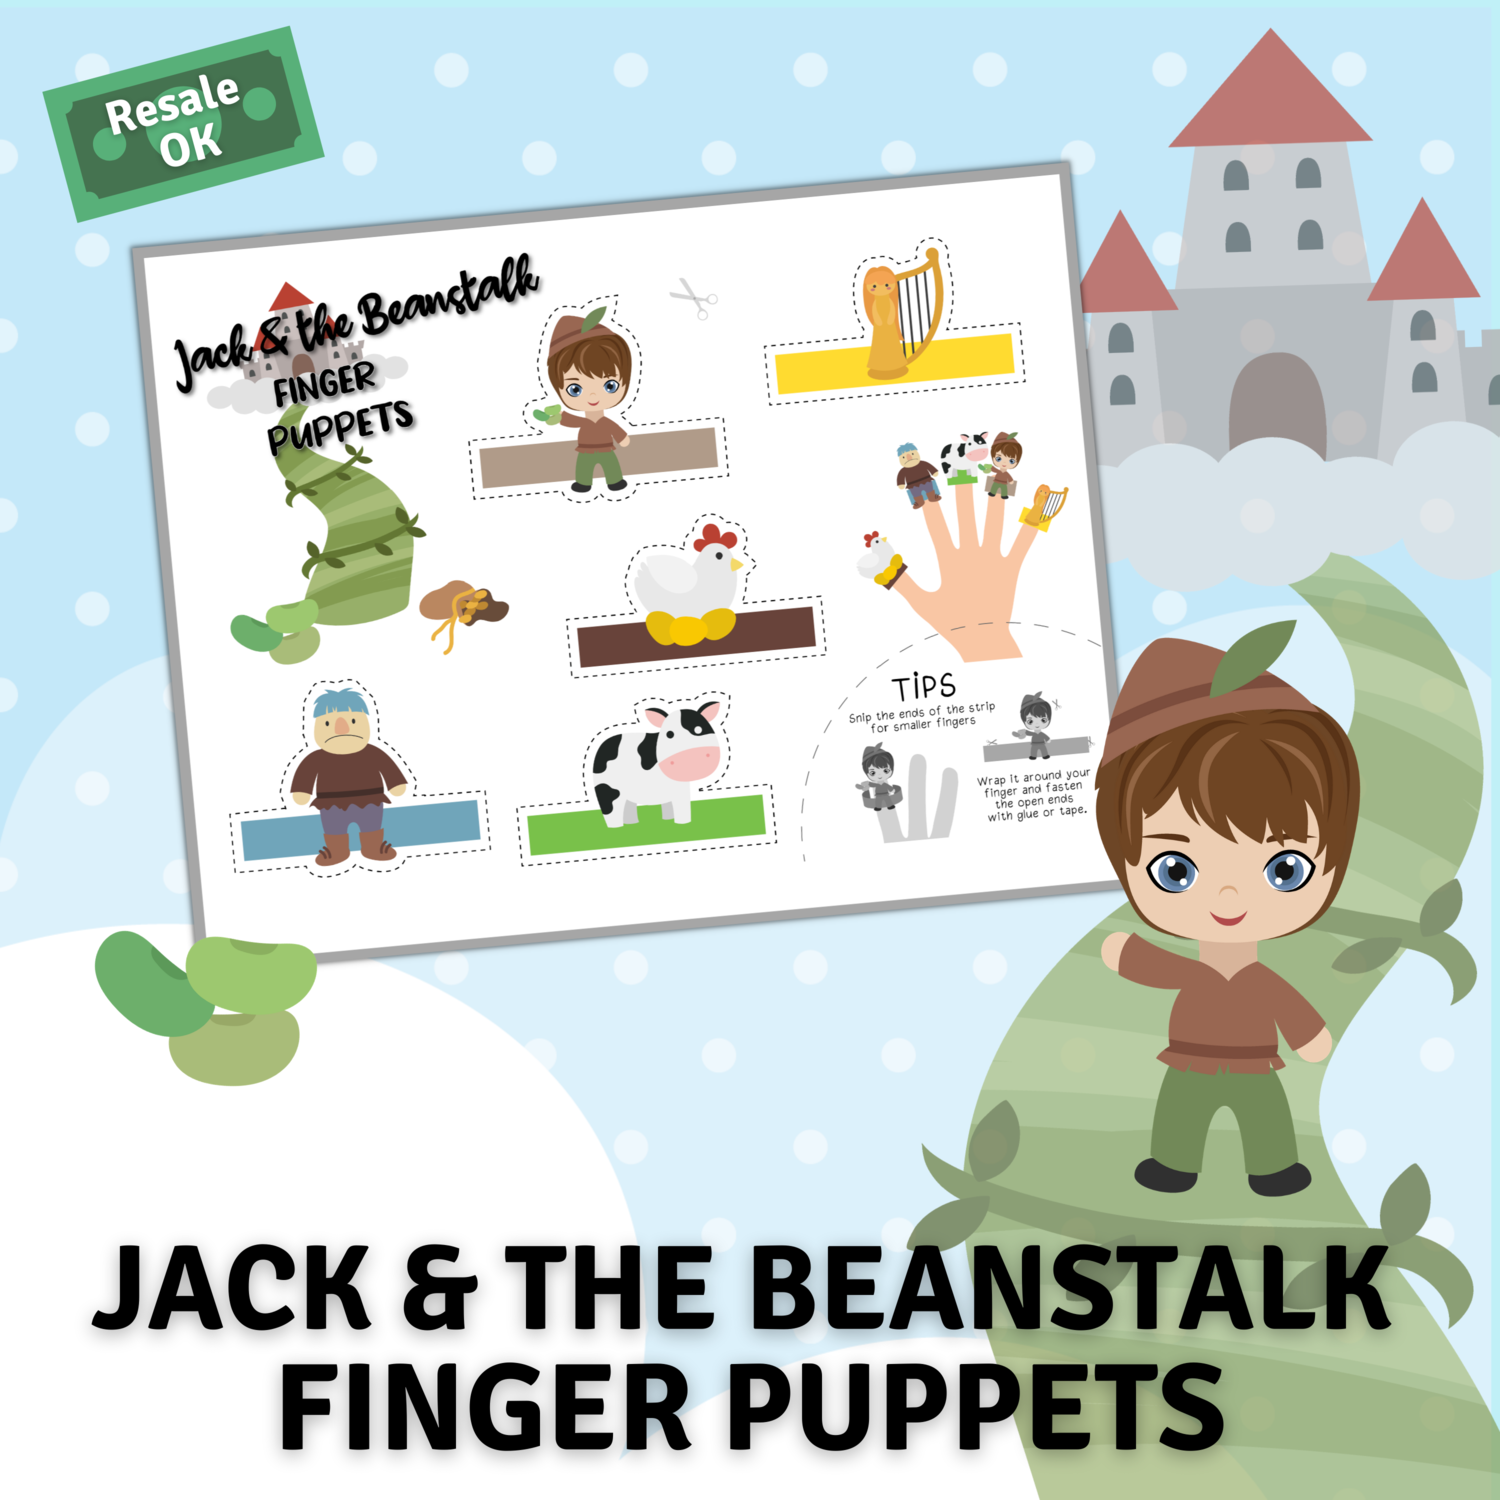 Jack and the Beanstalk Finger Puppets for Corinne